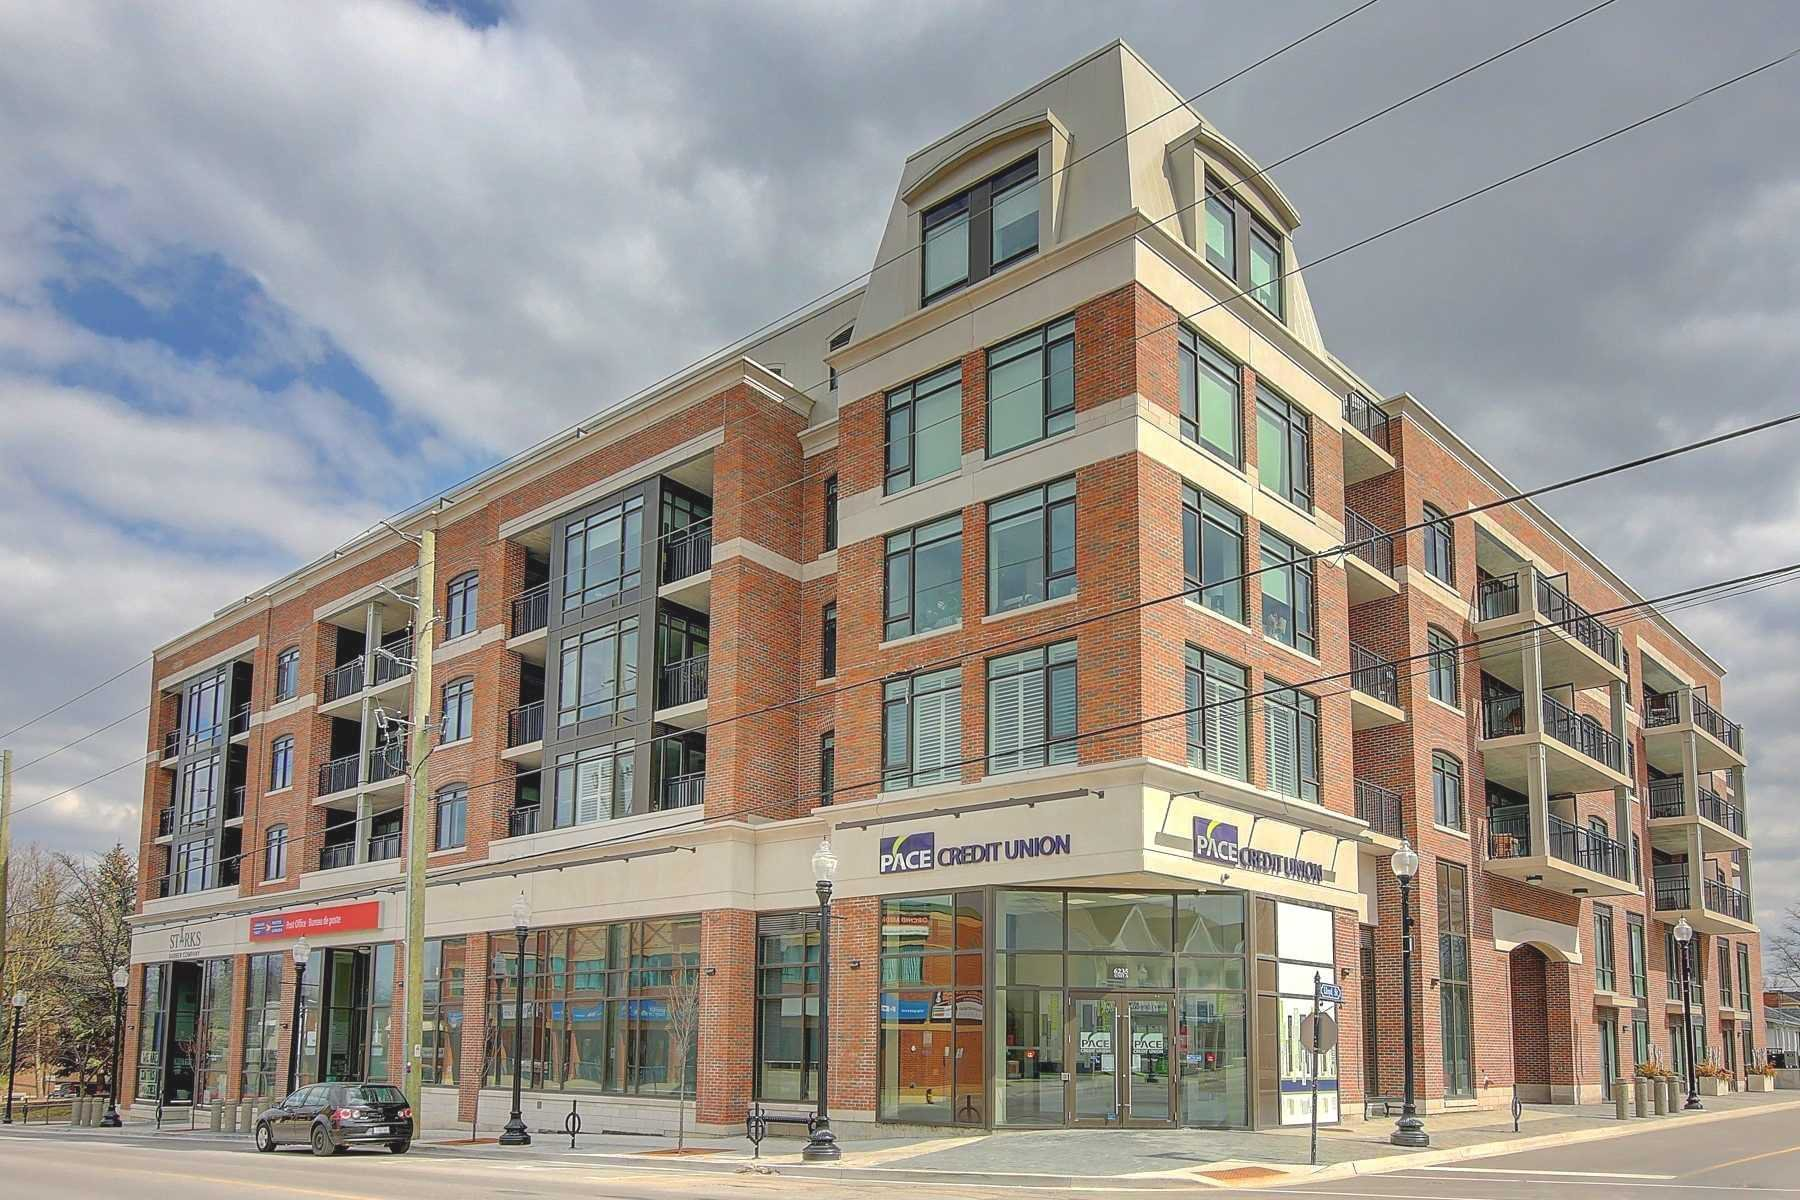 Main Photo: 6235 Main St Ph506 in Whitchurch-Stouffville: Condo for sale : MLS®# N4745607